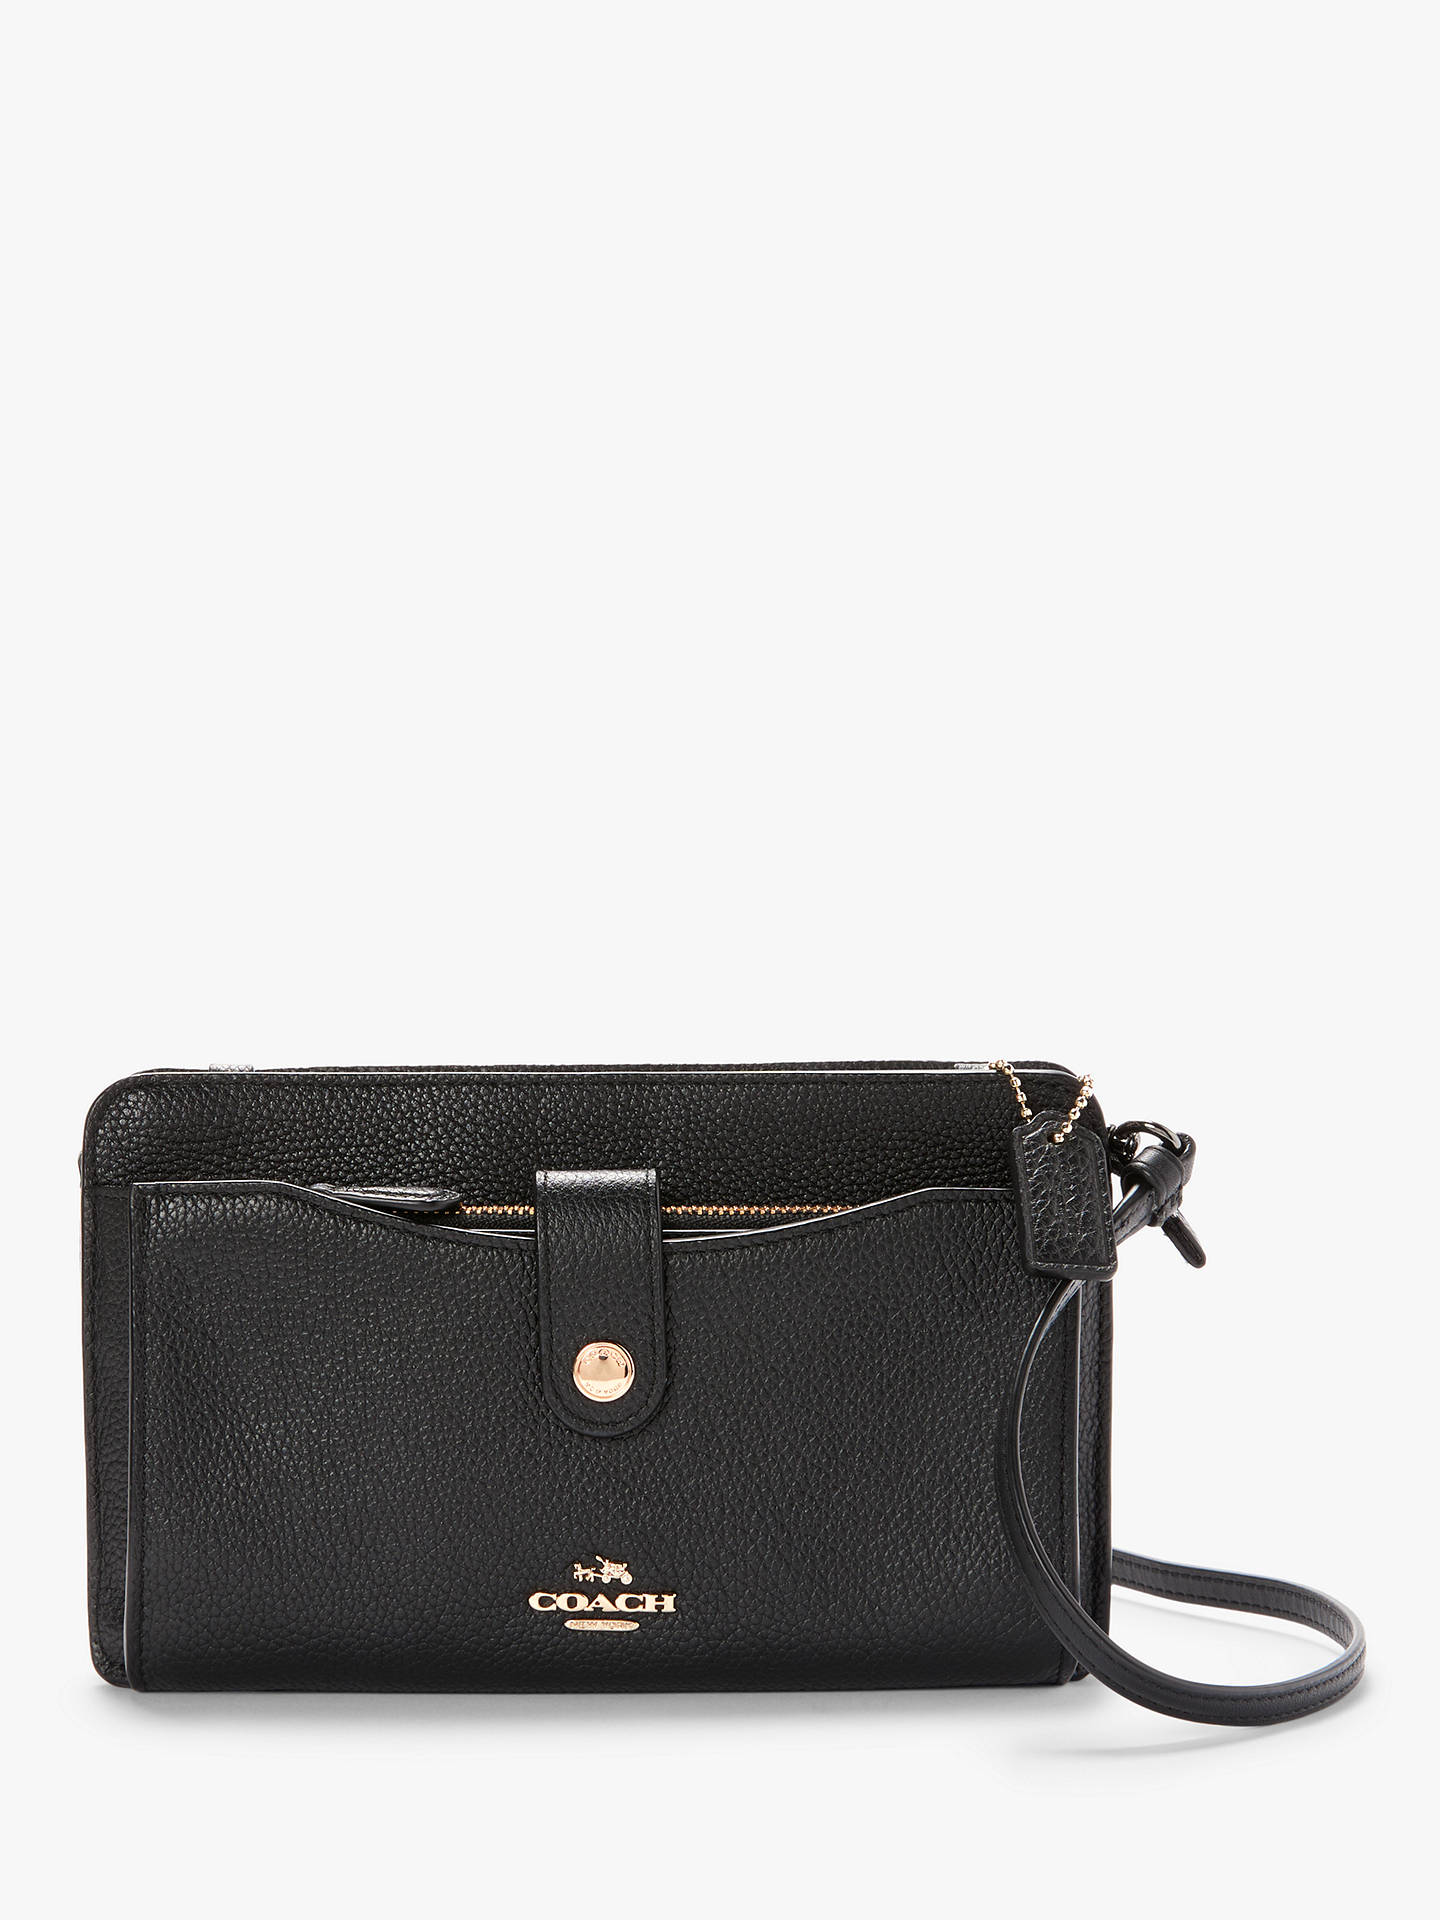 eaf6daf47 Buy Coach Leather Pop Up Messenger Cross Body Bag, Black Online at  johnlewis.com ...